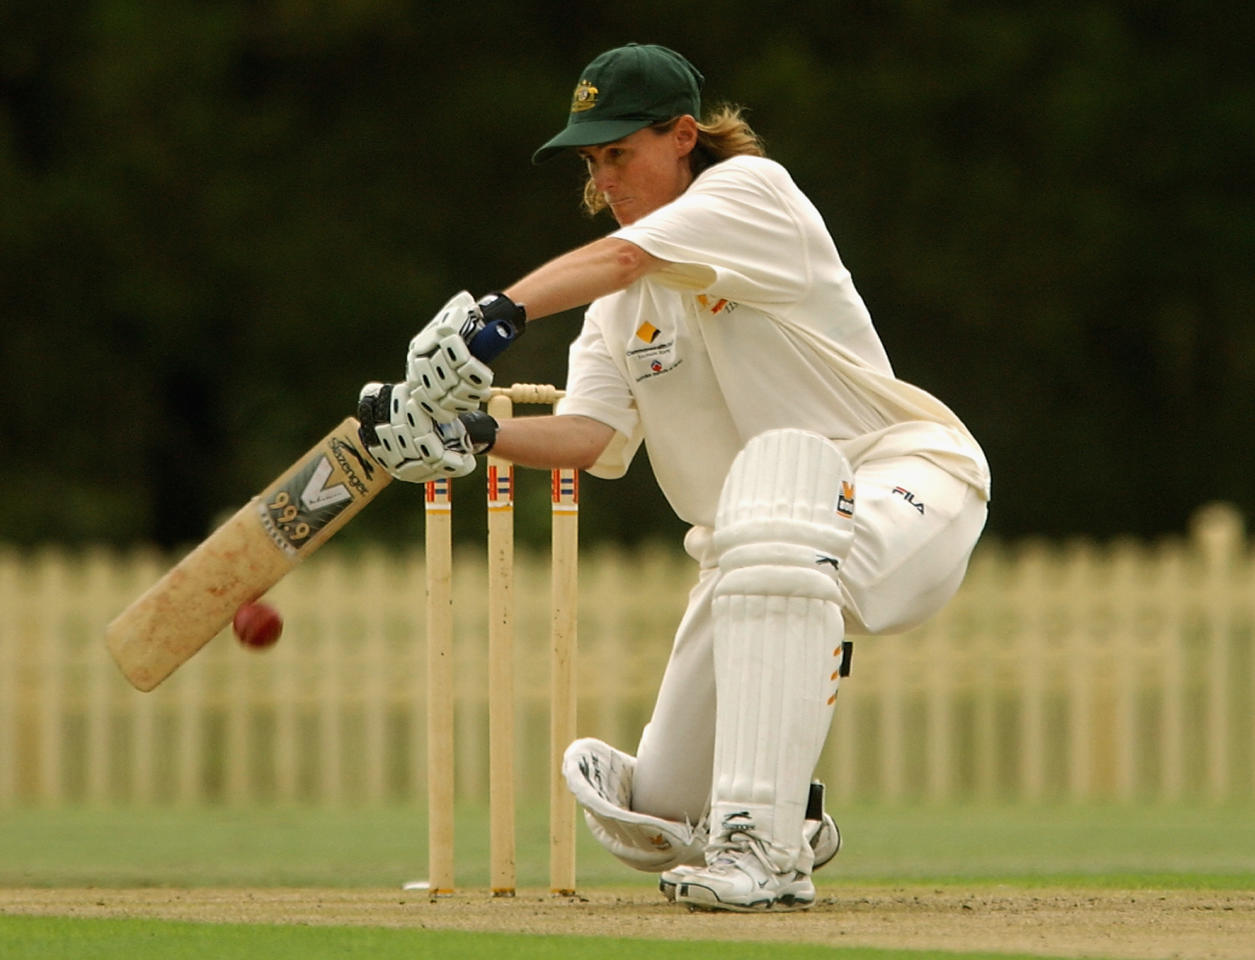 SYDNEY - FEBRUARY 26:  Belinda Clark of Australia in action during the first days play in the second test of the Womens Cricket Ashes series between Australia and England played at Bankstown Oval in Sydney, Australia on February 26, 2003. (Photo by Chris McGrath/Getty Images)